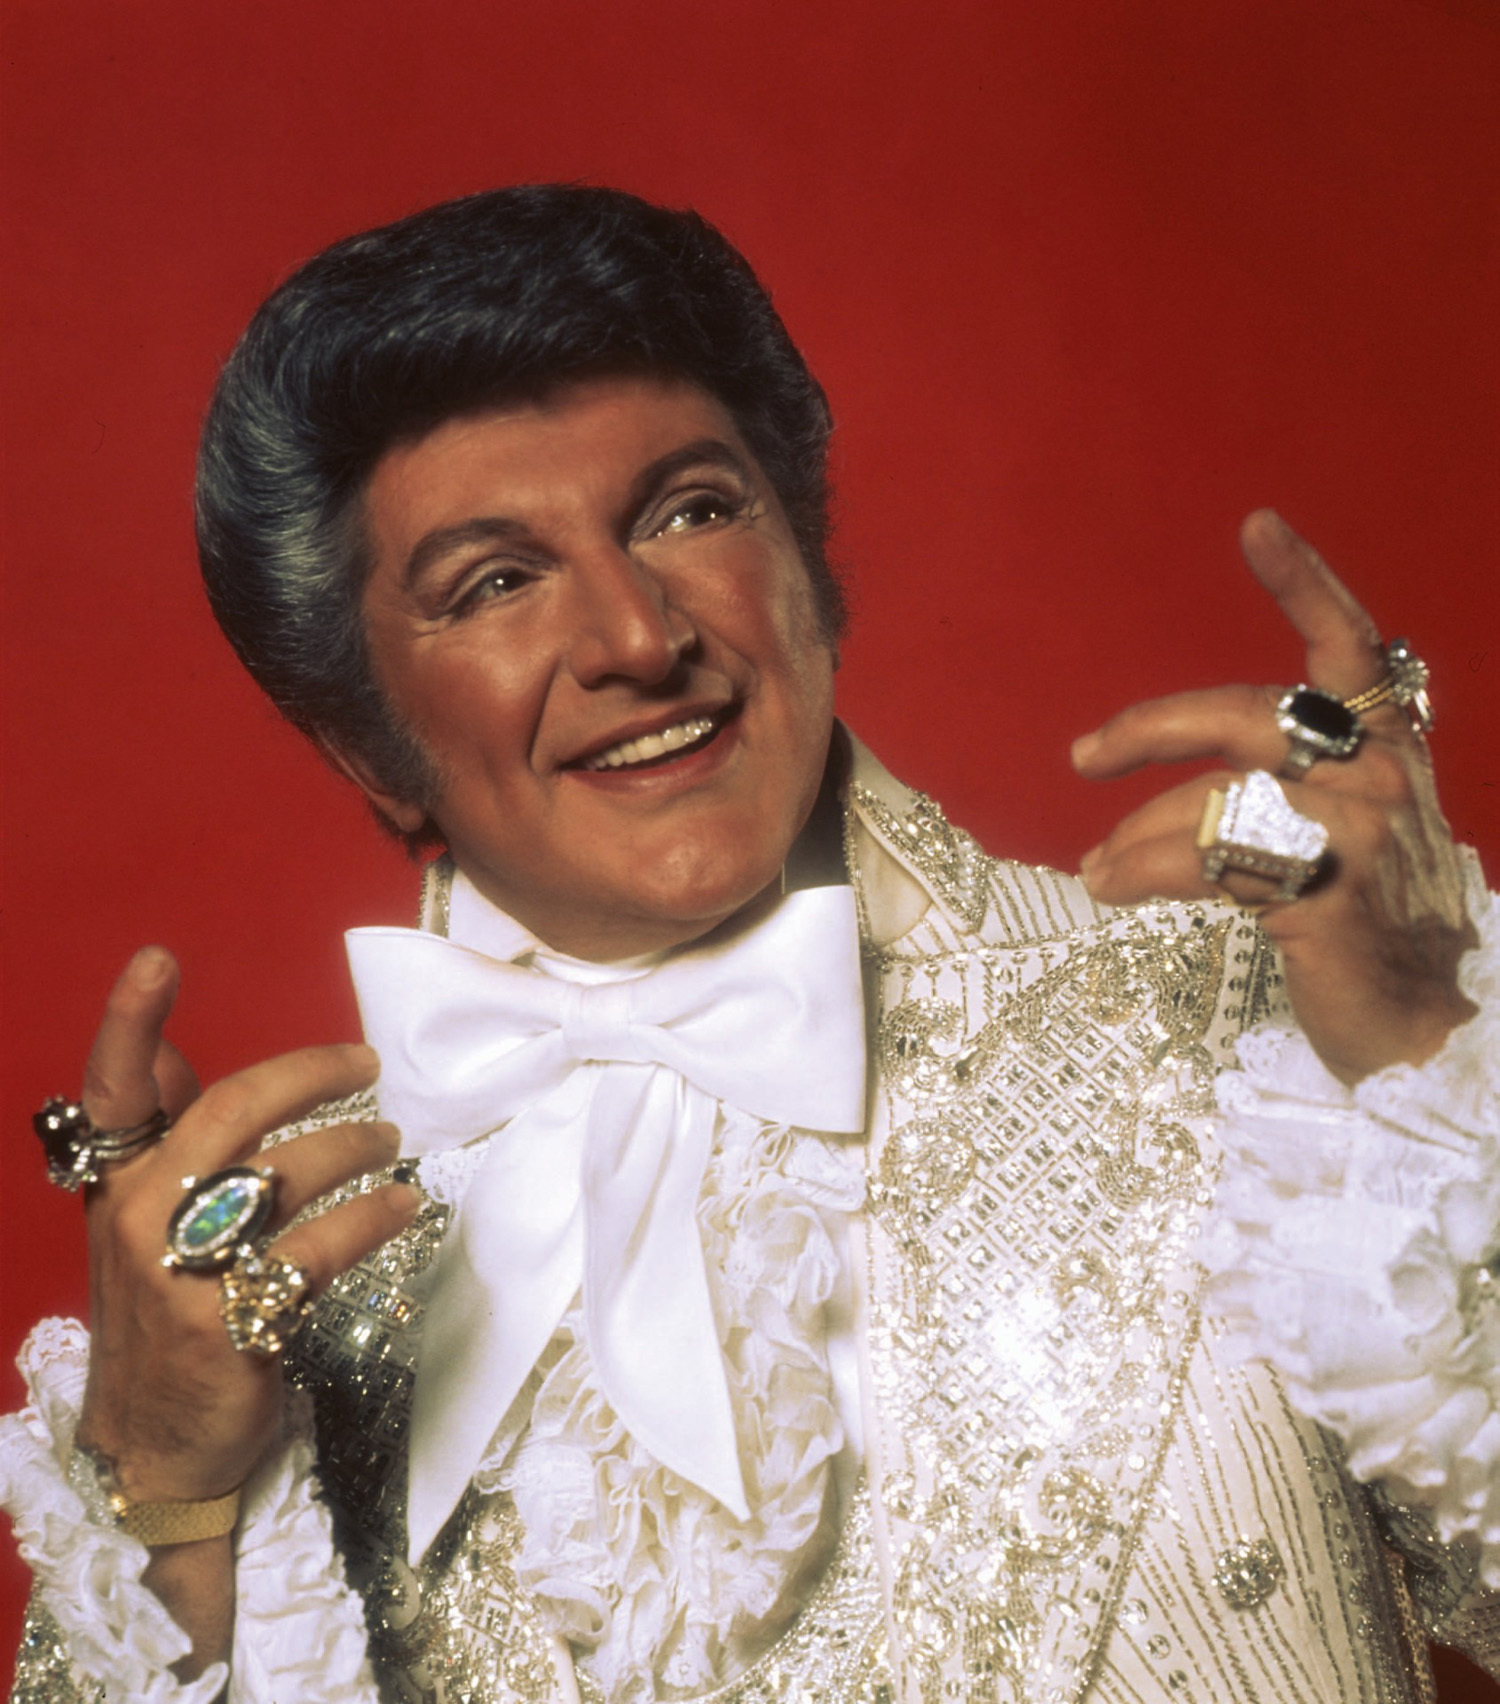 liberace real clever high HD Wallpaper